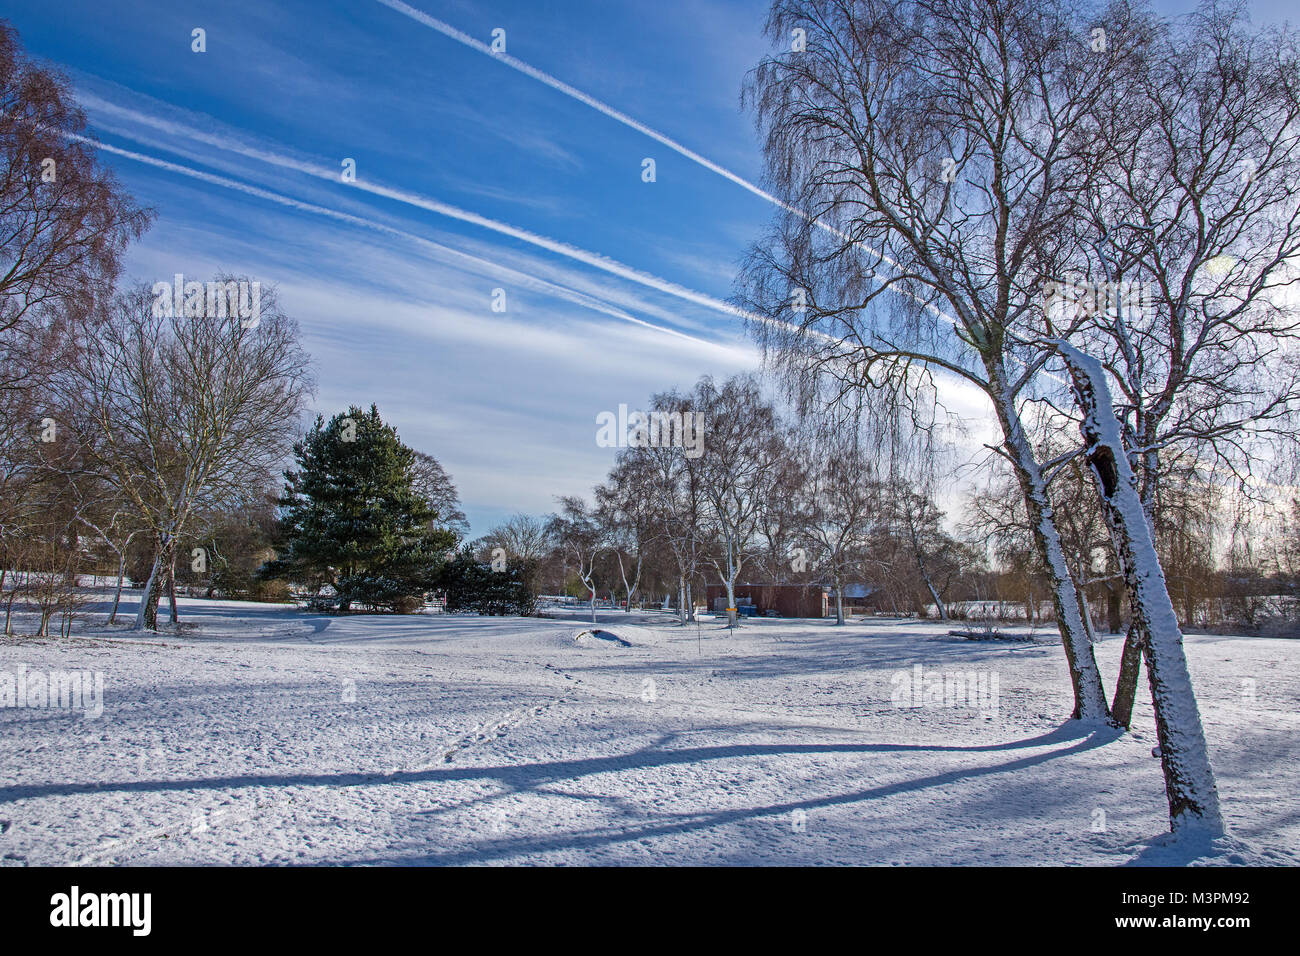 Lichfield Staffordshire England on Monday 12th February 2018 Sunshine fresh snow and shadows and spectacular jet - Stock Image